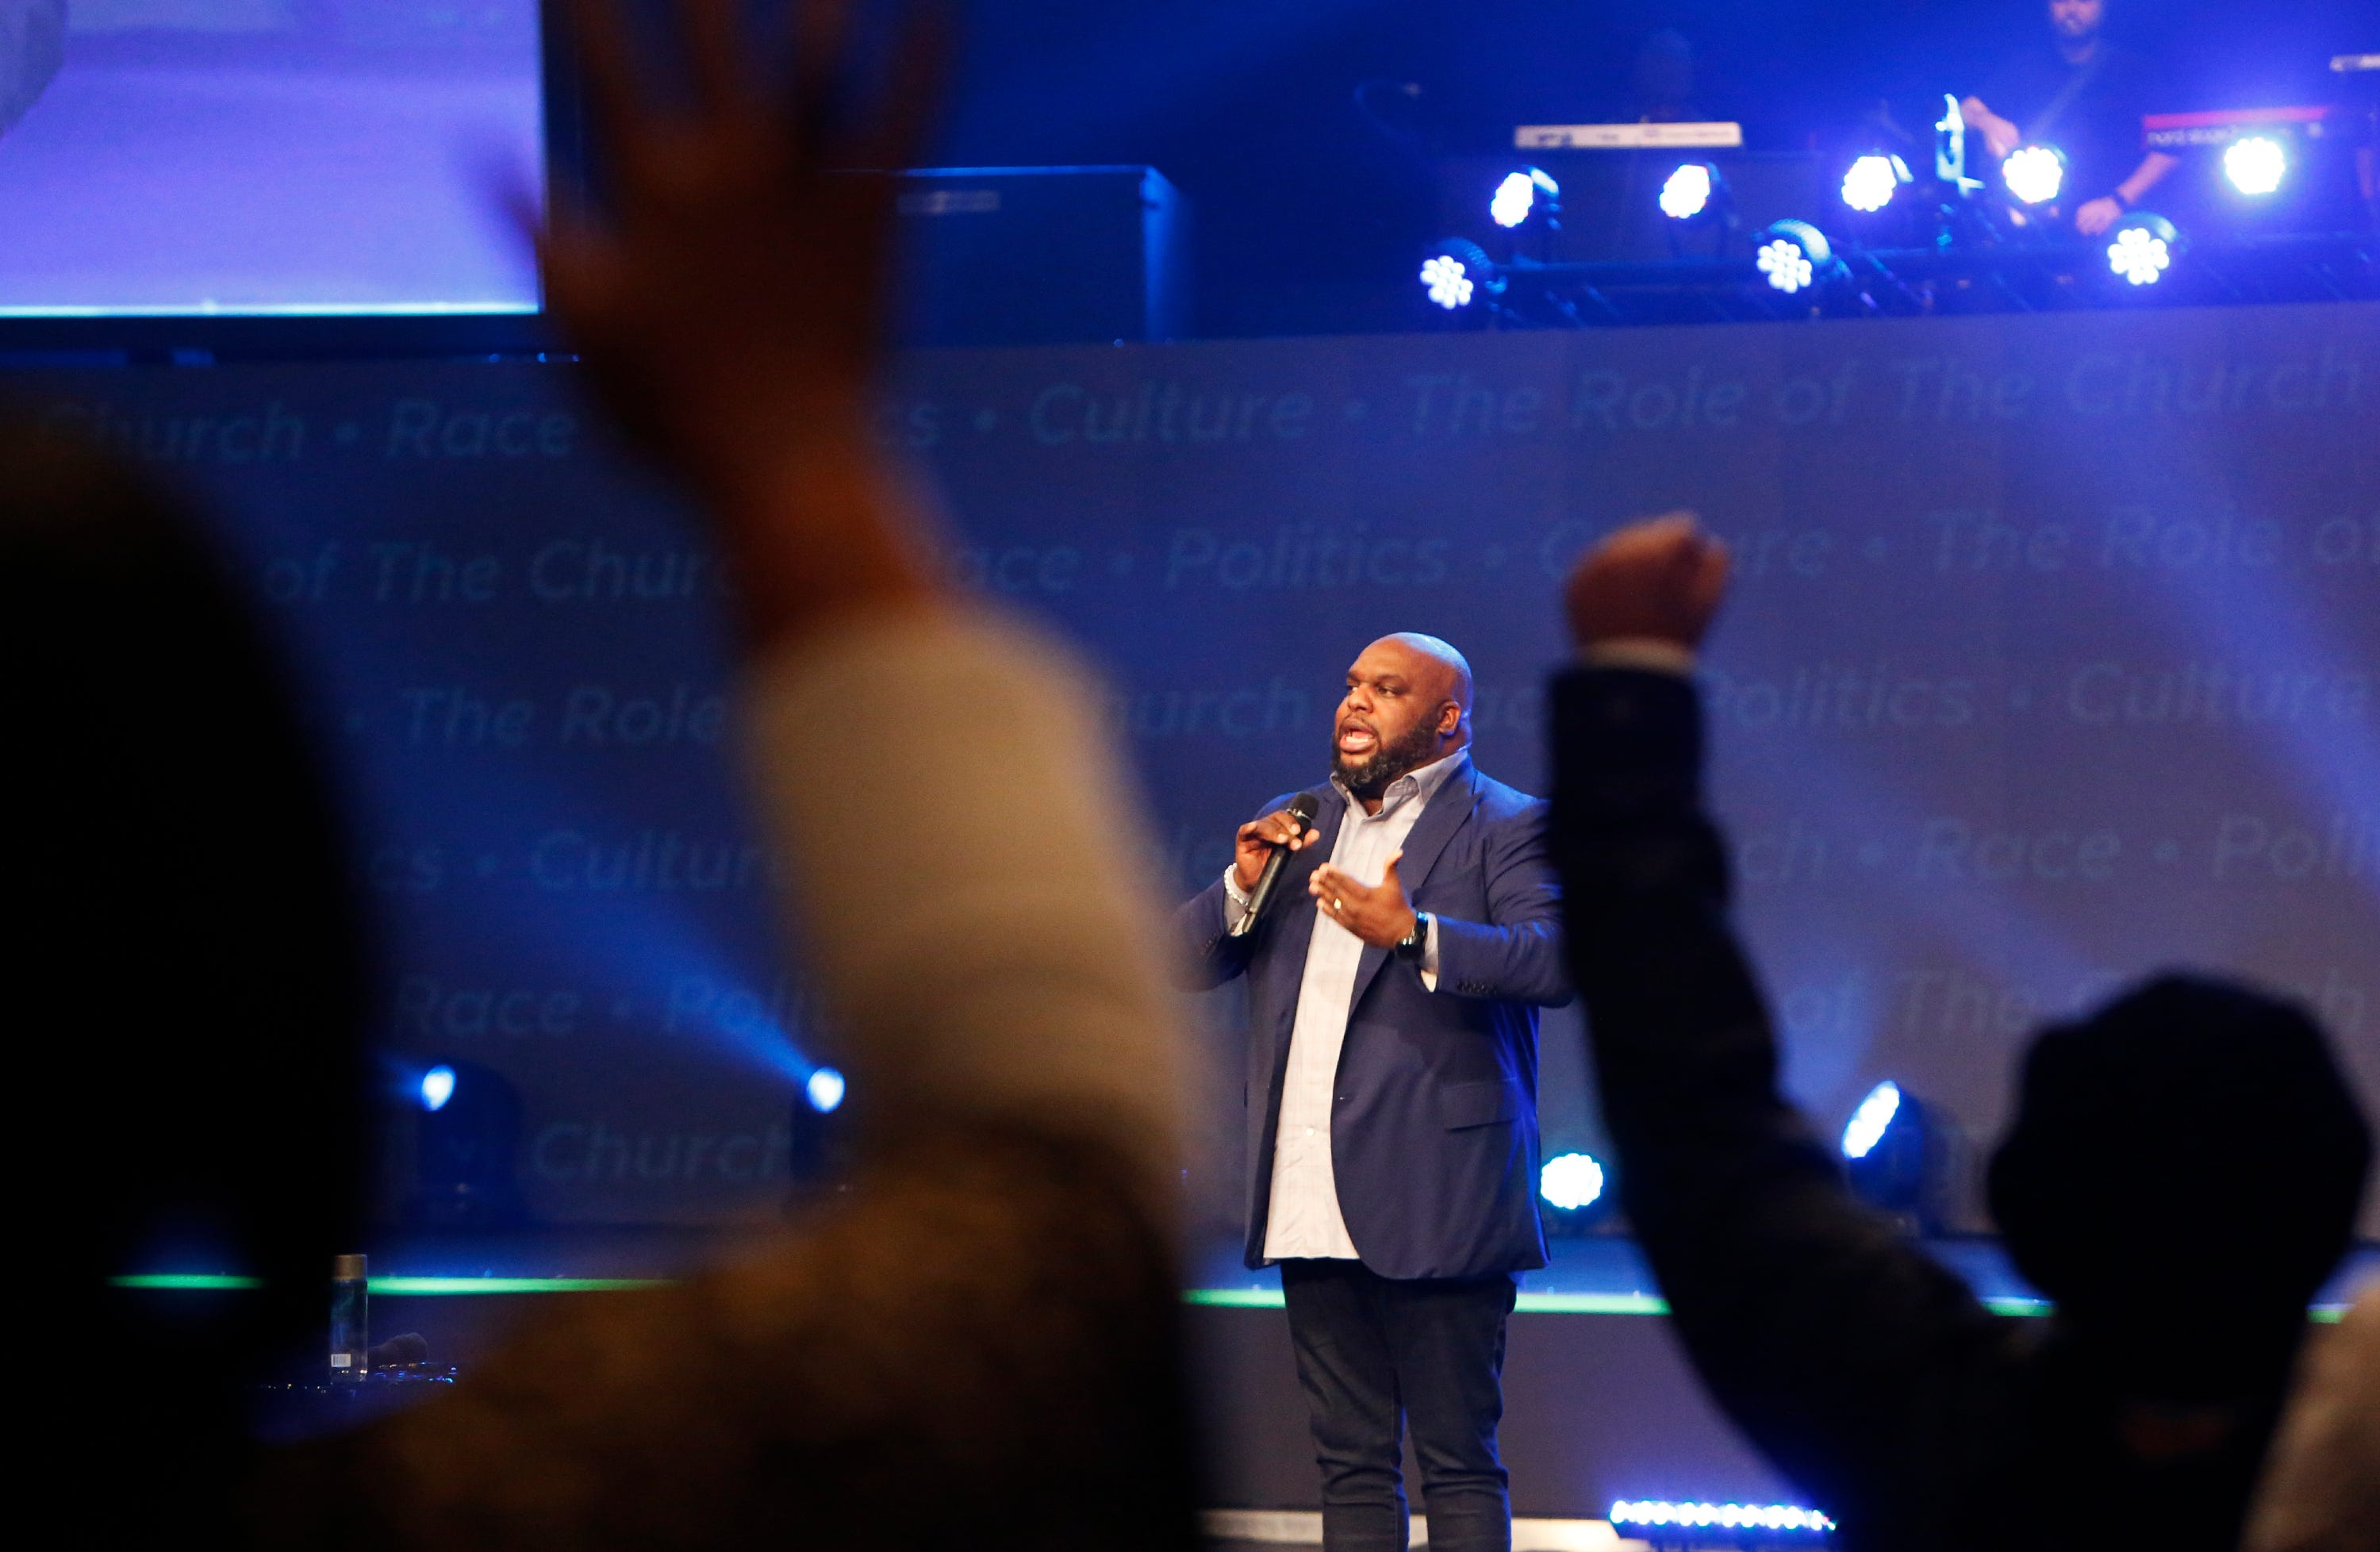 With tears, megachurch Pastor John Gray defends $200K Lamborghini anniversary gift to wife